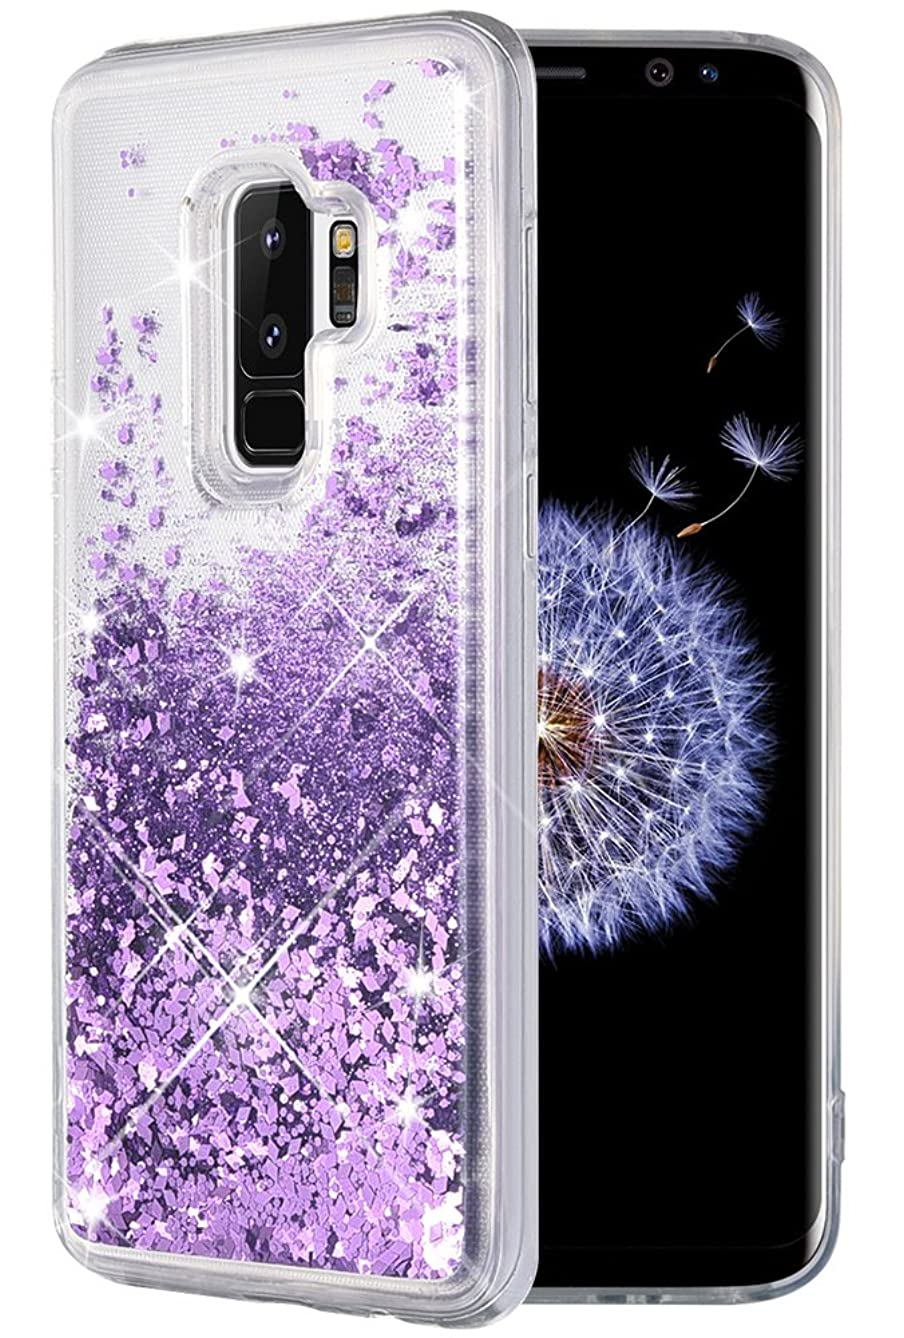 Caka Galaxy S9 Plus Case, Galaxy S9 Plus Glitter Case [Liquid Series] Luxury Fashion Bling Flowing Liquid Floating Sparkle Glitter Soft TPU Case for Samsung Galaxy S9 Plus - (Purple)